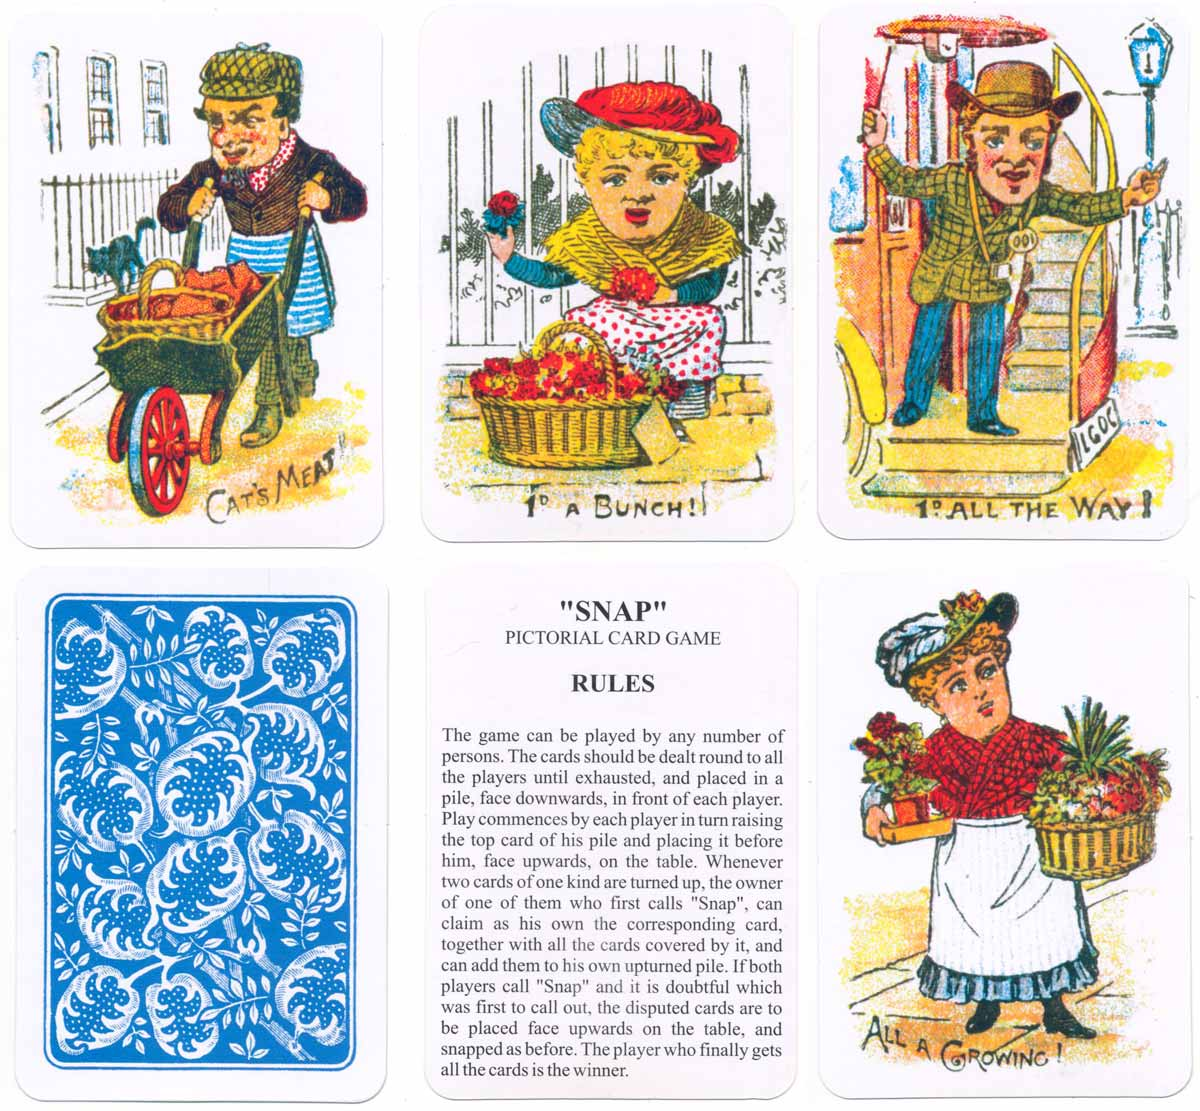 Woolley & Co 'Snap' (c.1905) re-print published by Russimco (cards made in China), 2008